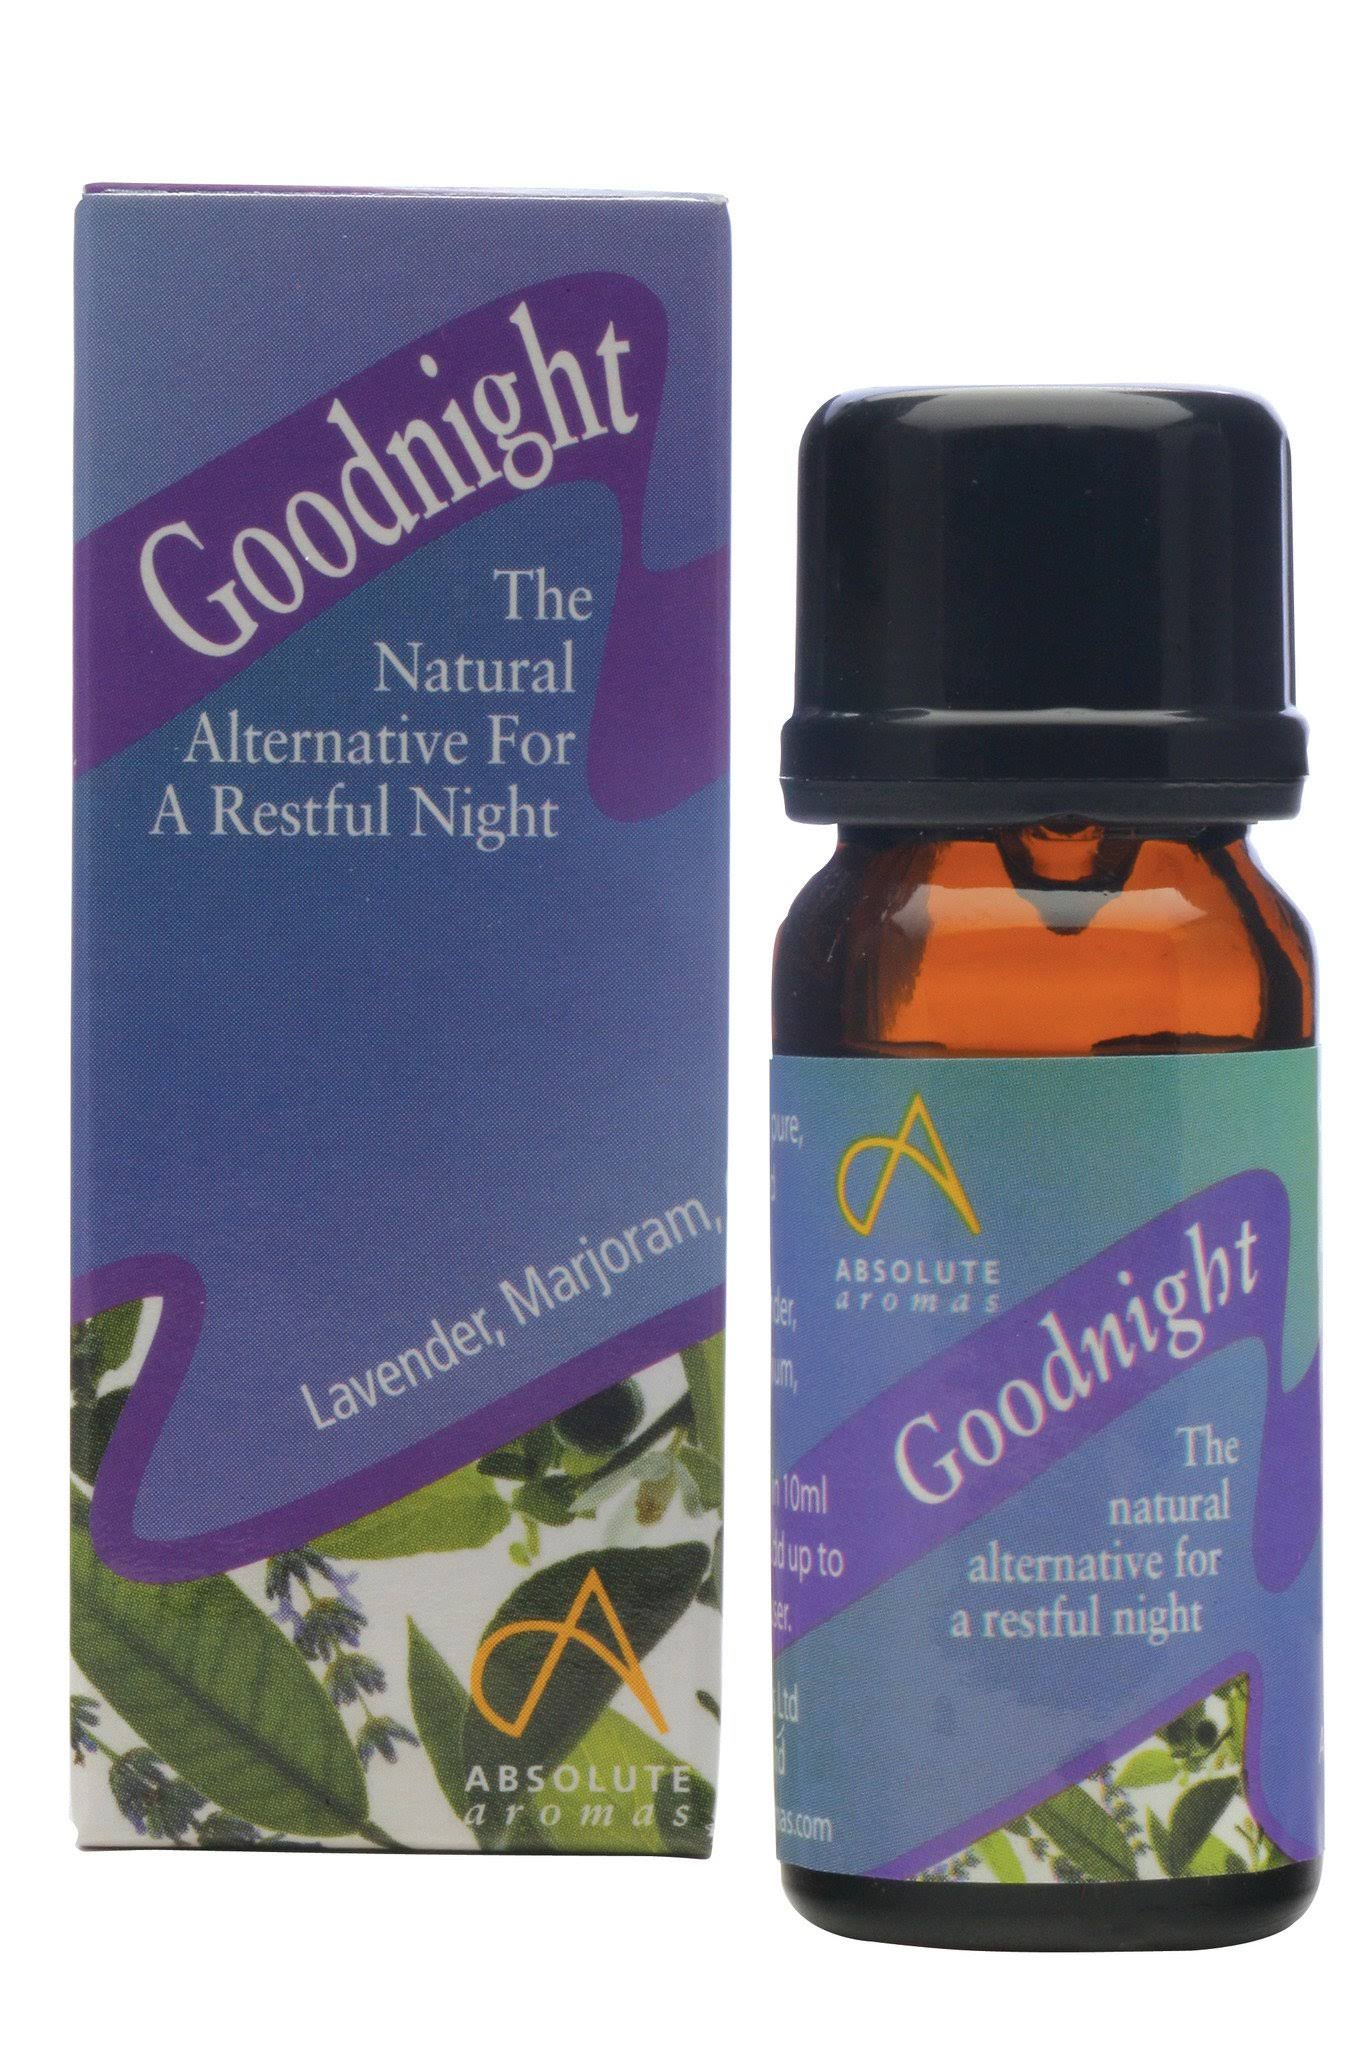 Absolute Aromas Goodnight Blend Oil 10 ml